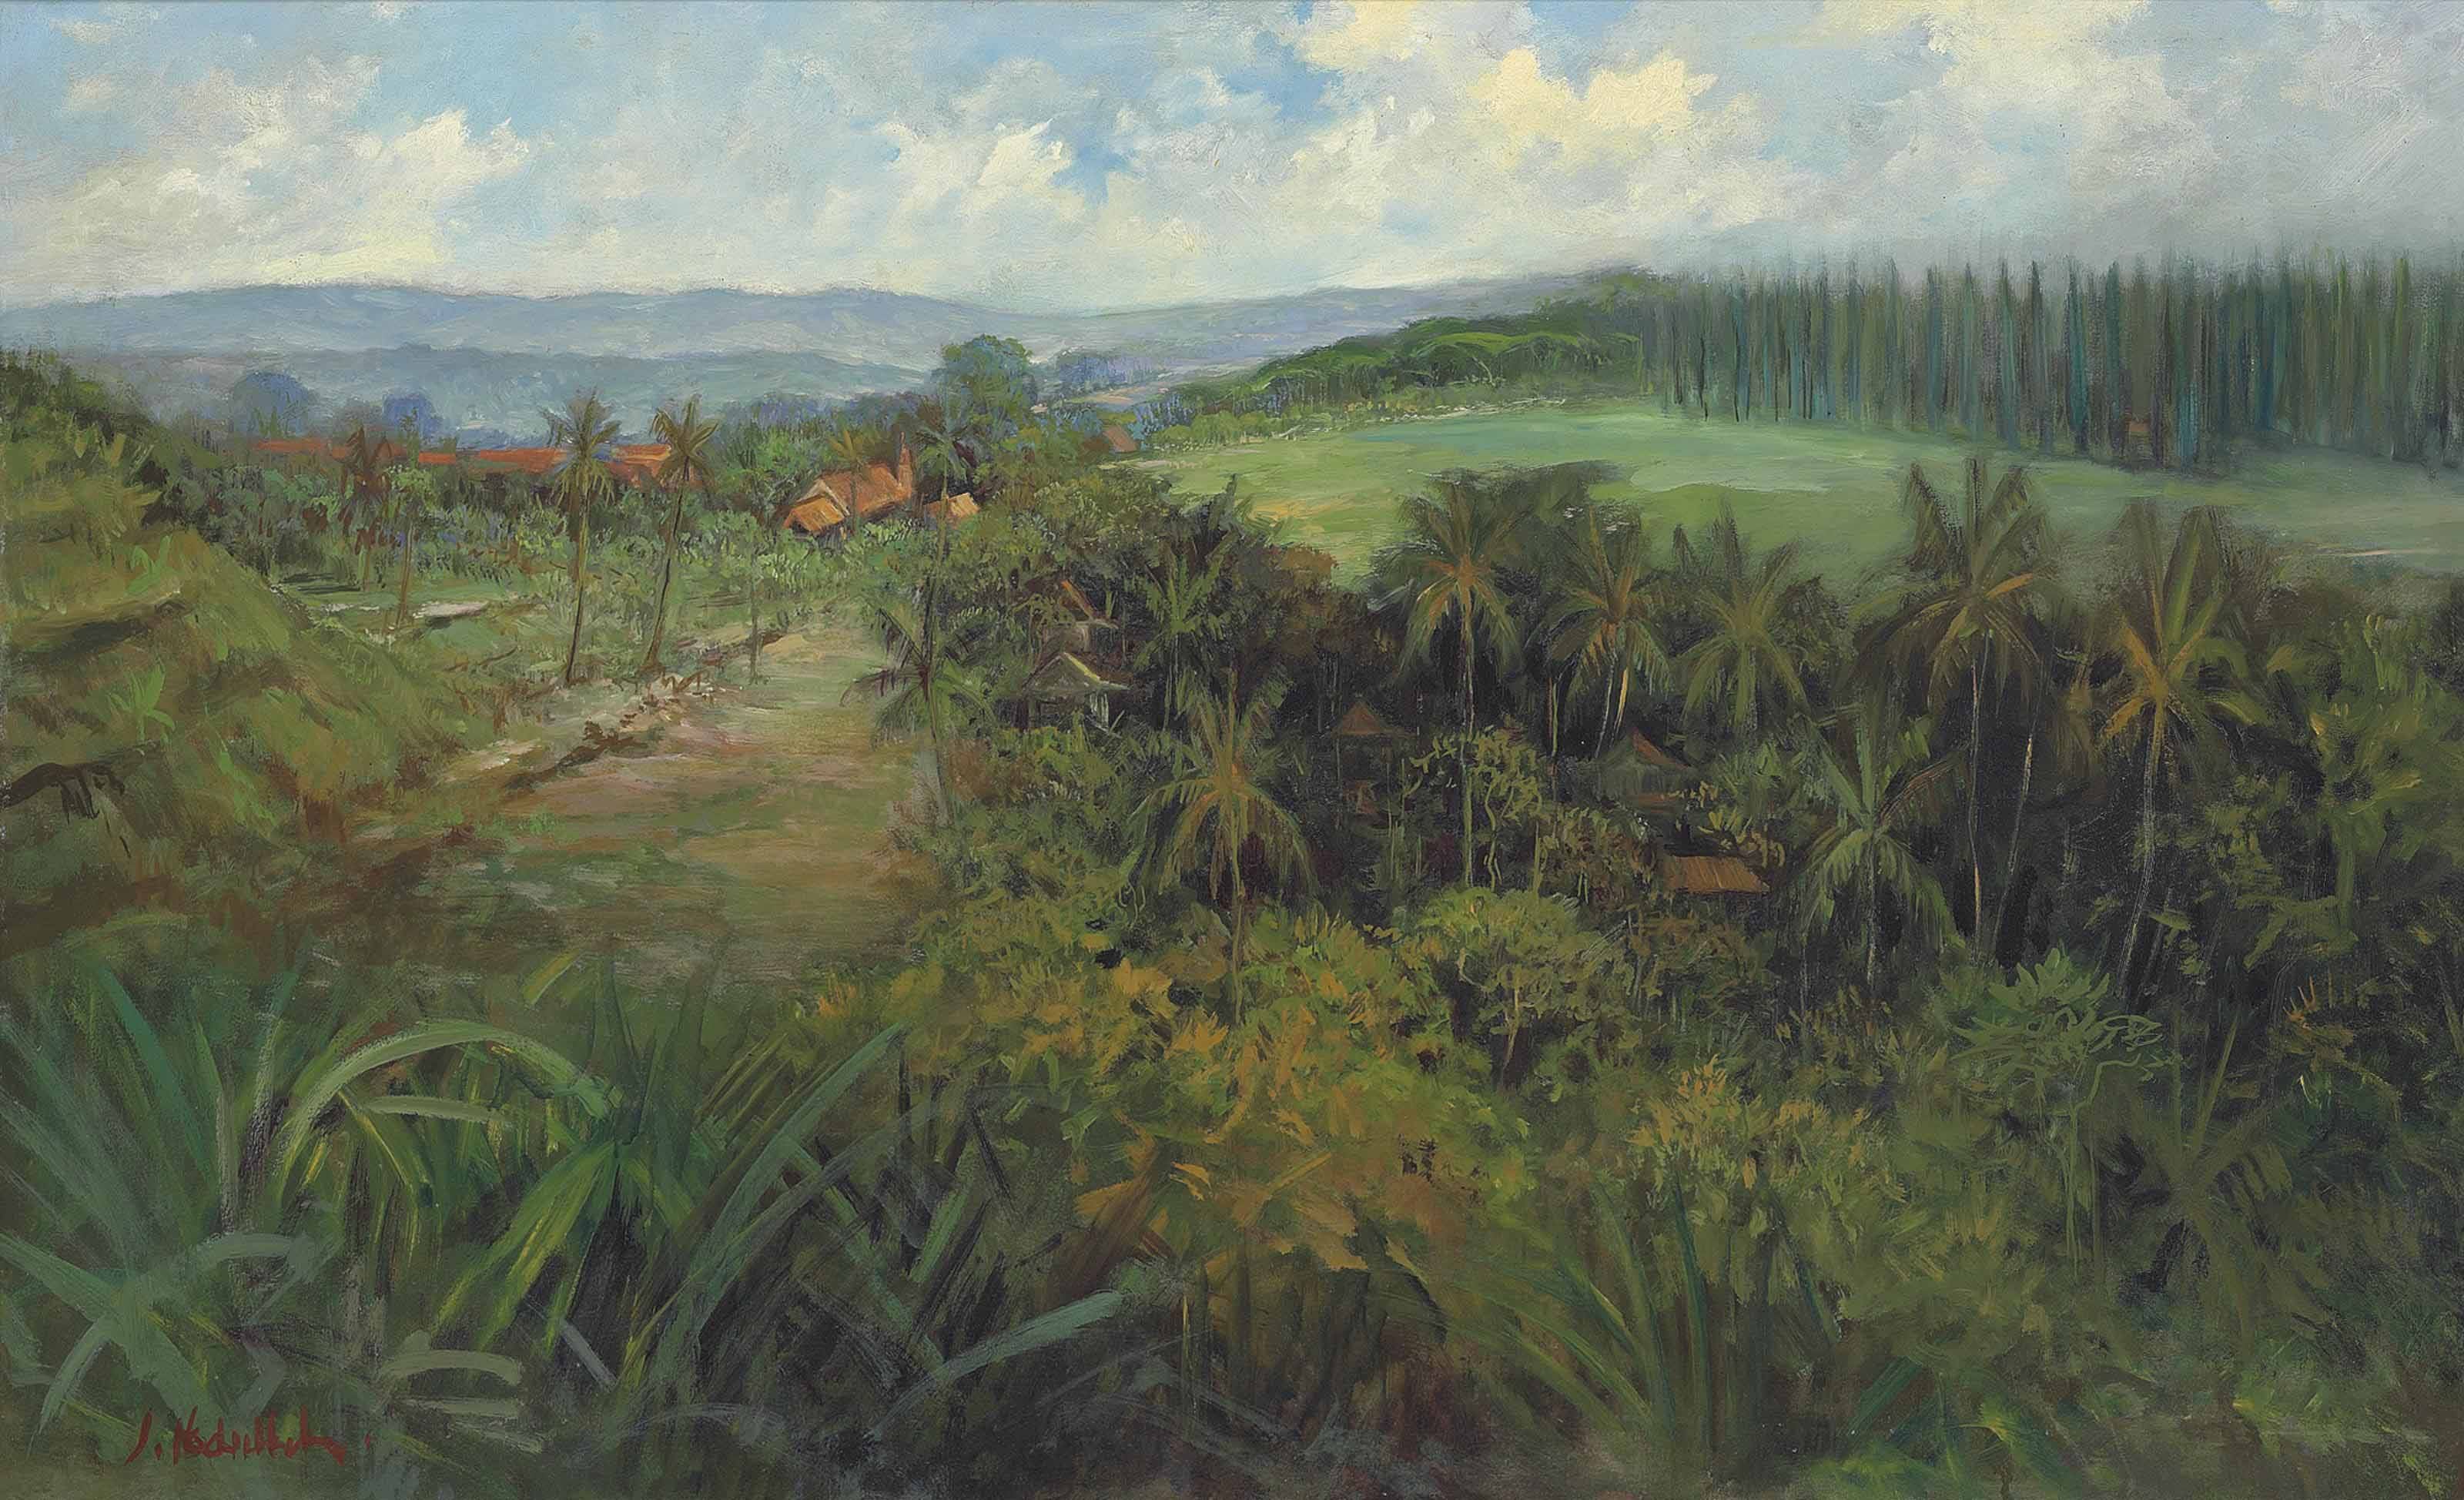 An Indonesian landscape, with houses, palm trees and rice fields